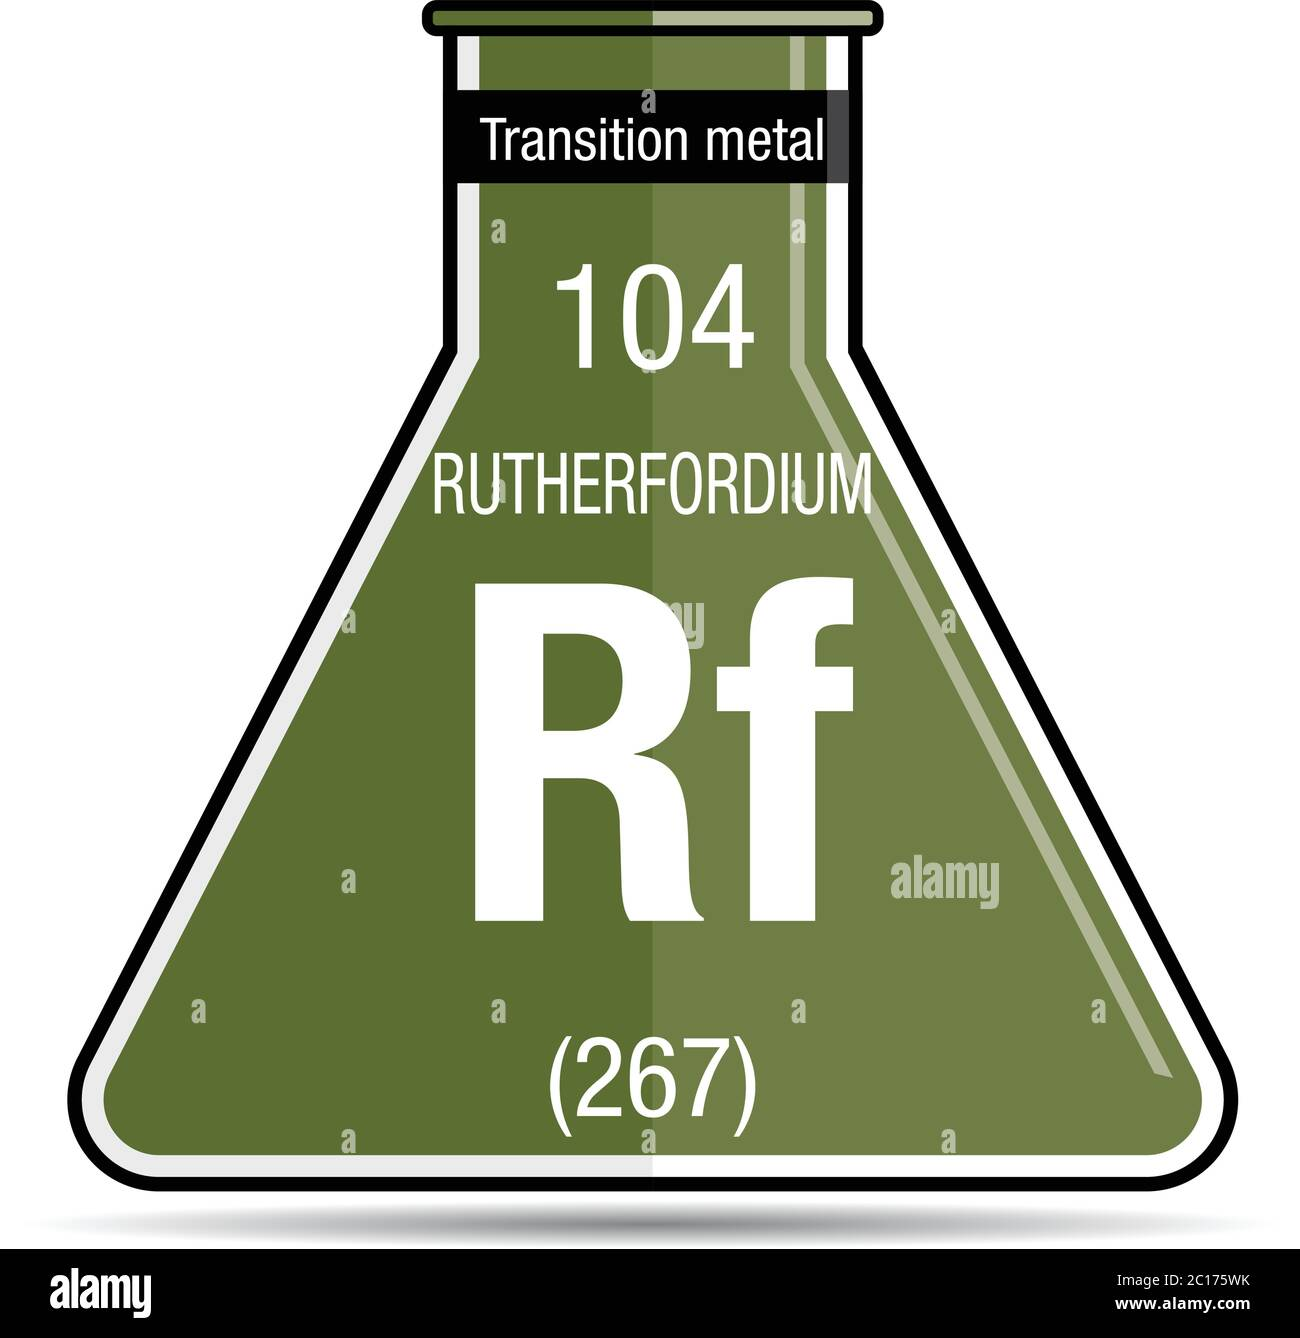 Rutherfordium symbol on chemical flask. Element number 104 of the Periodic Table of the Elements - Chemistry Stock Vector